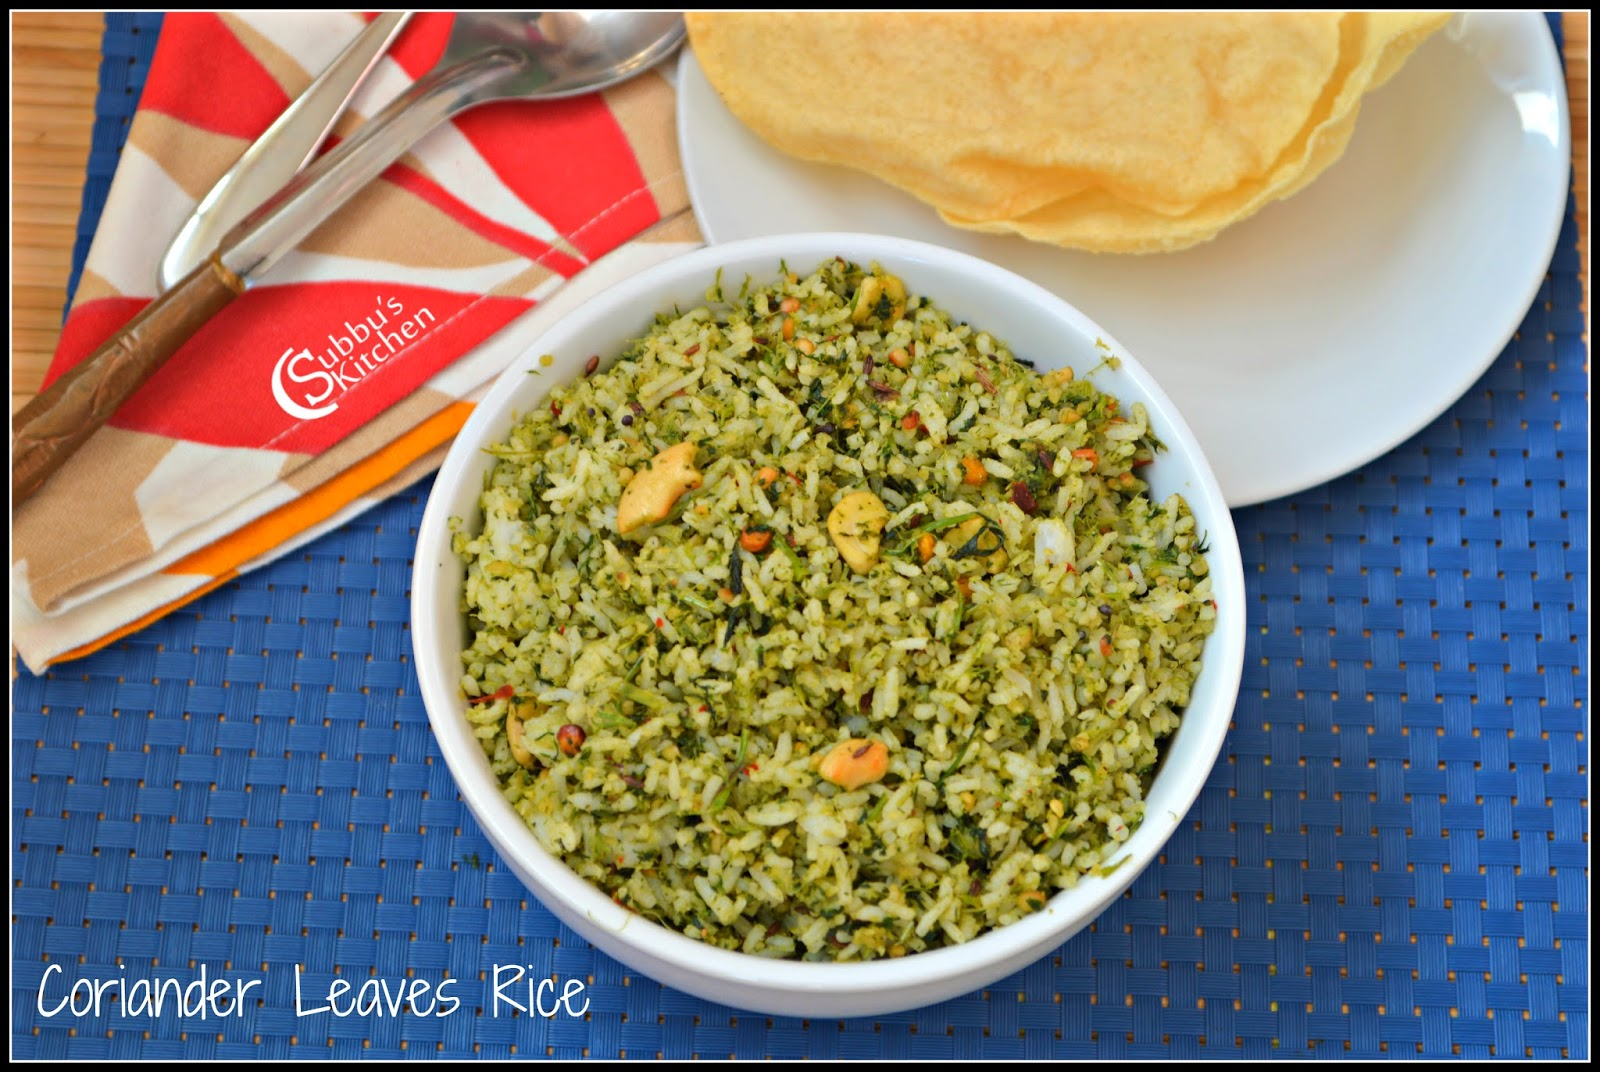 Kothamalli Rice (Corainder Leaves Rice) | No Onion No Garlic Coriander Leaves Rice